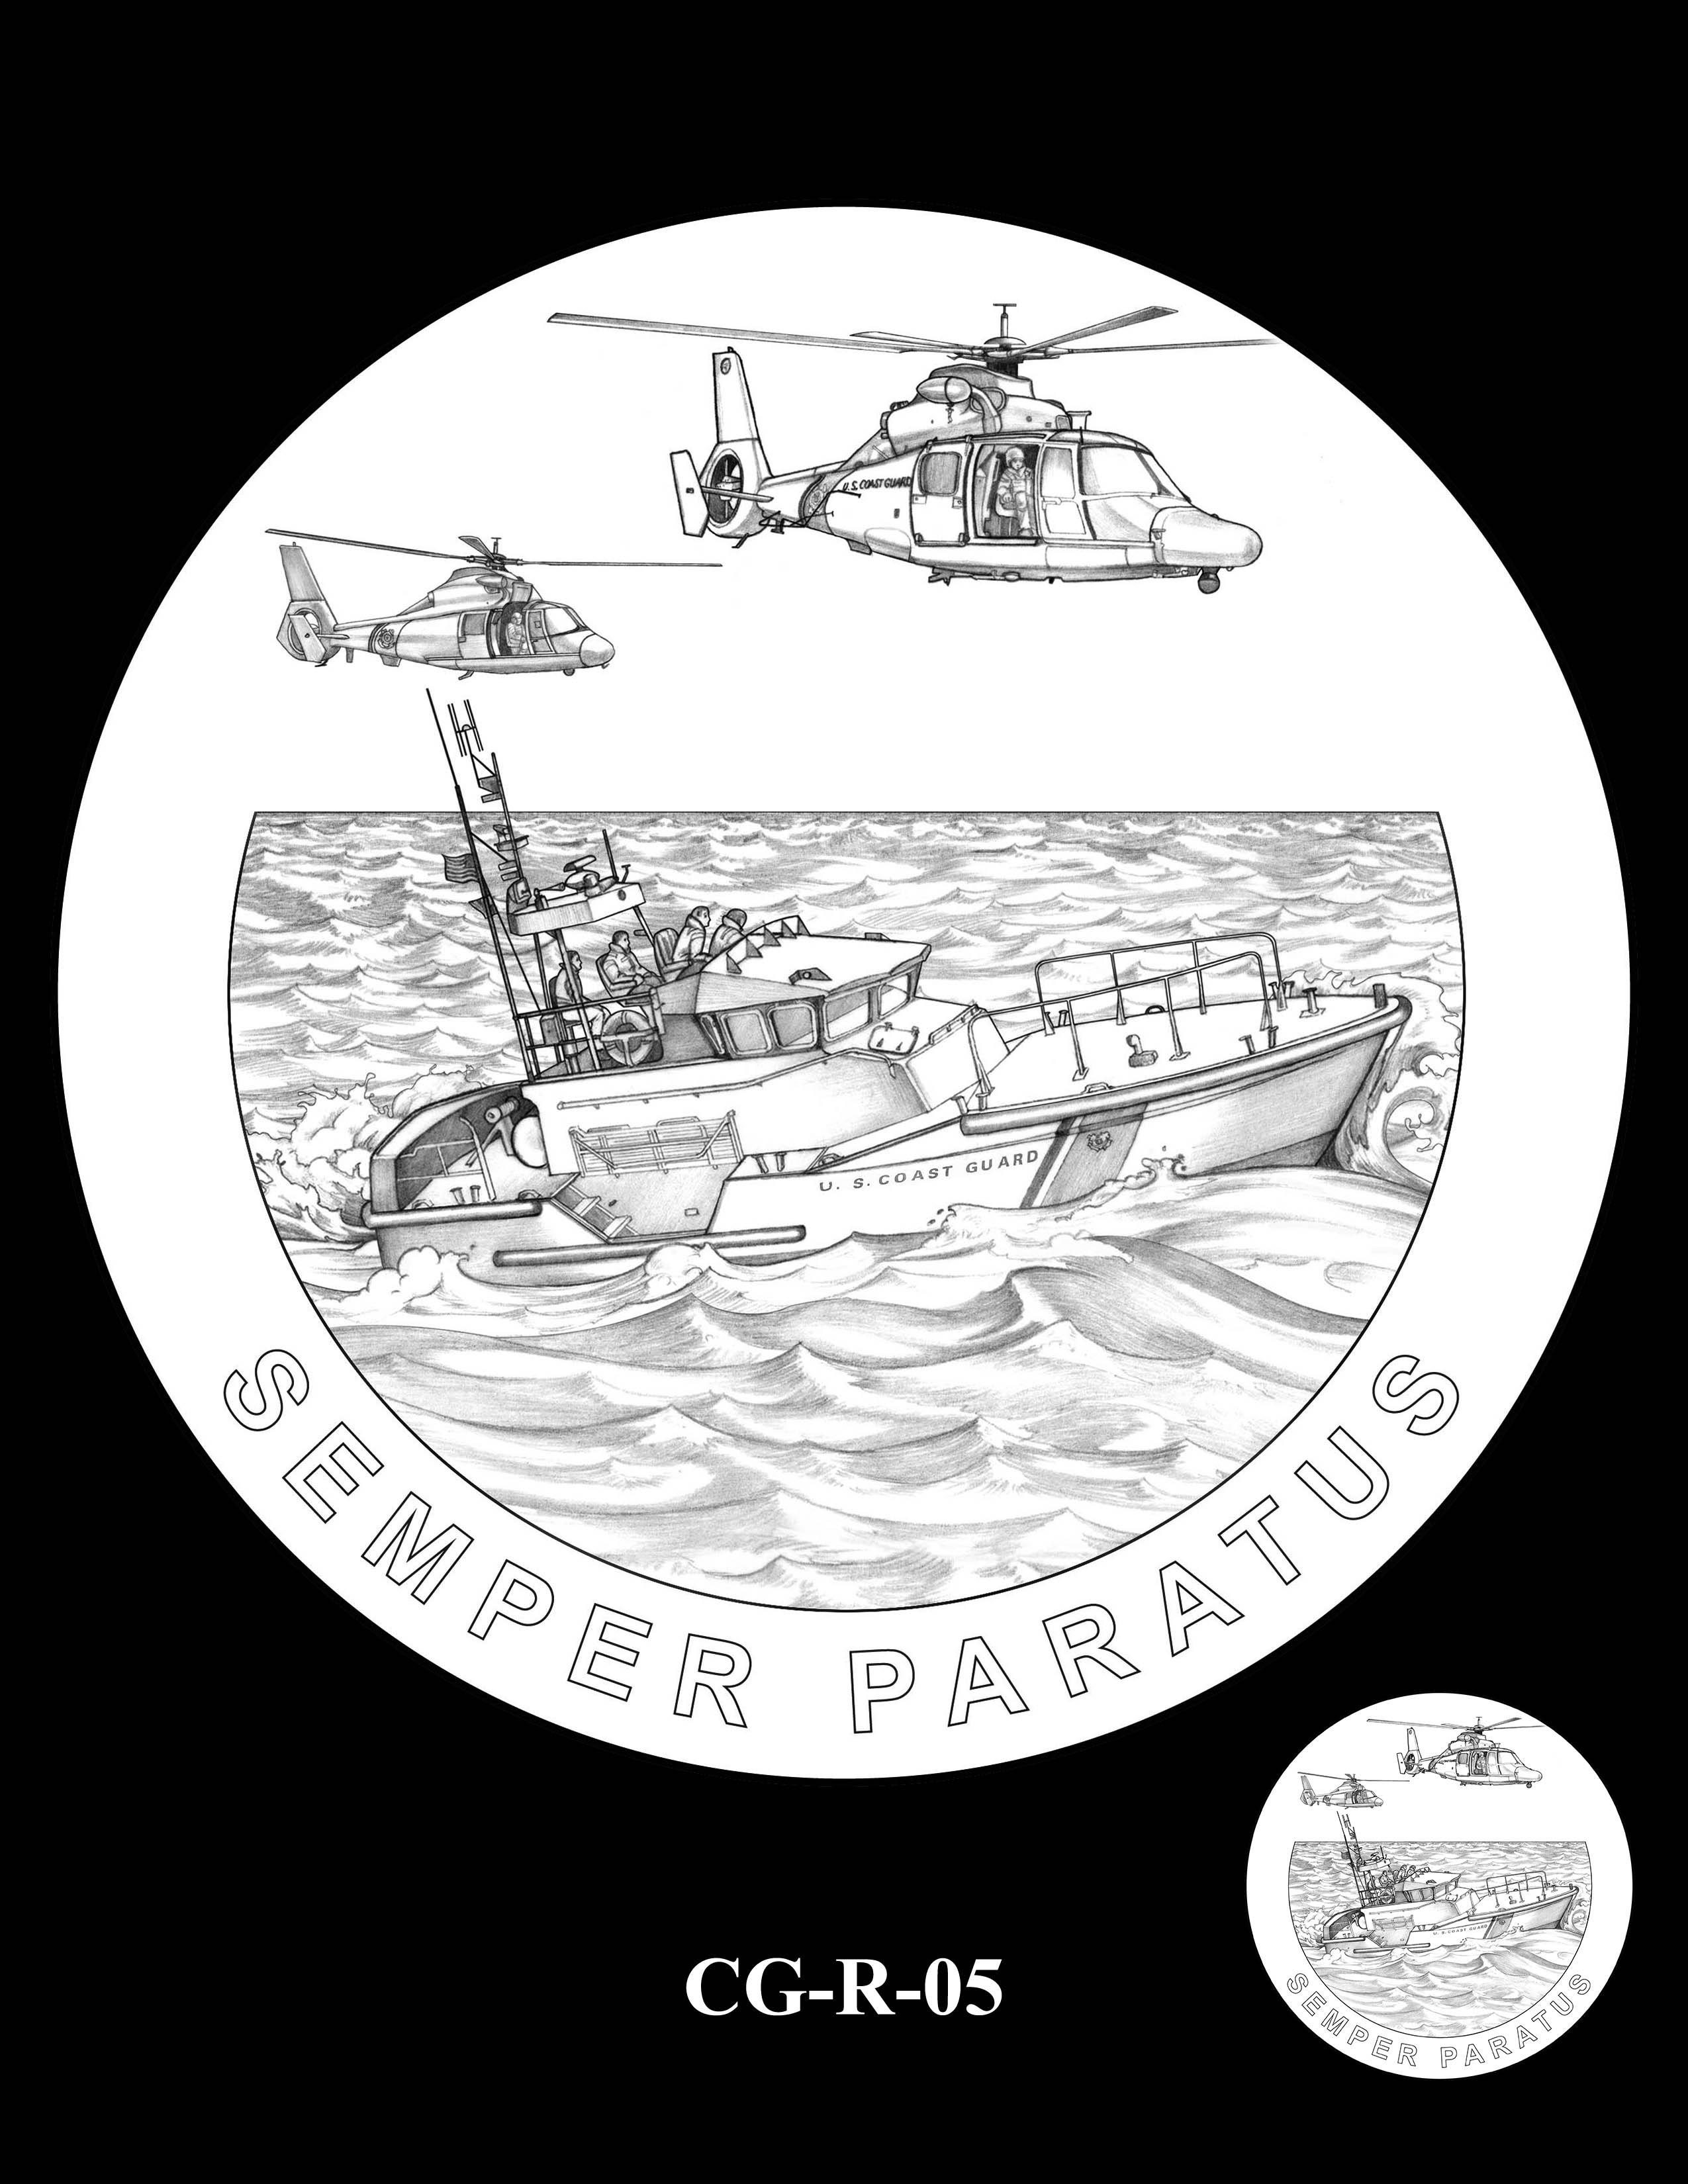 CG-R-05 -- Armed Forces Medal - Coast Guard